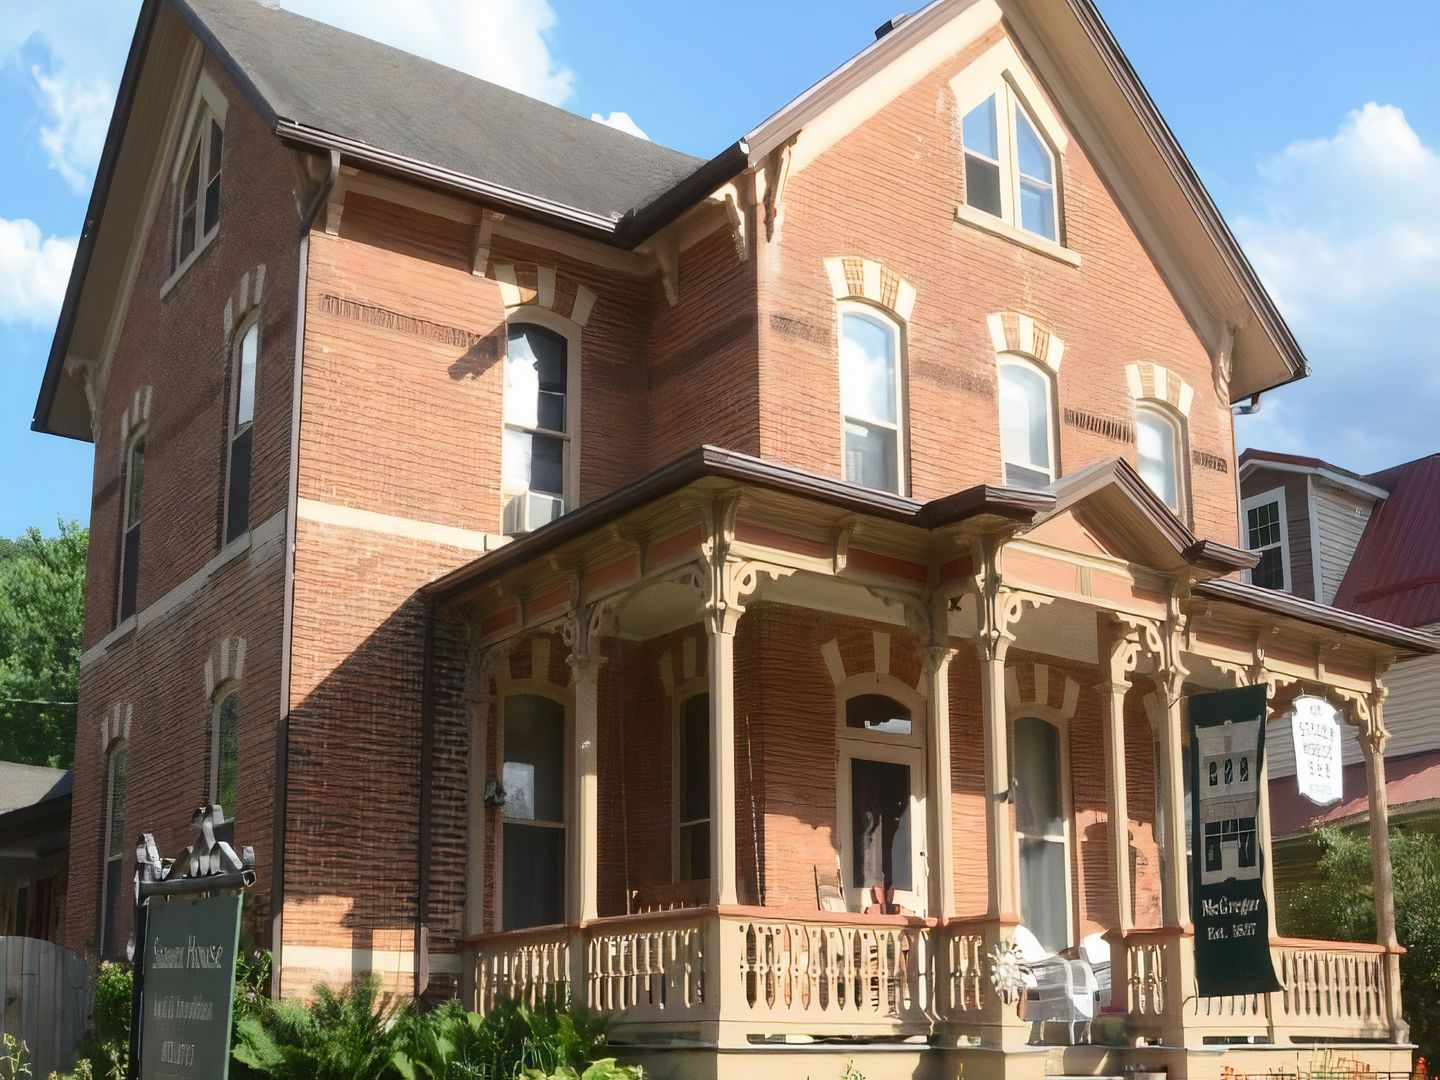 A large brick building at Stauer House Bed and Breakfast.